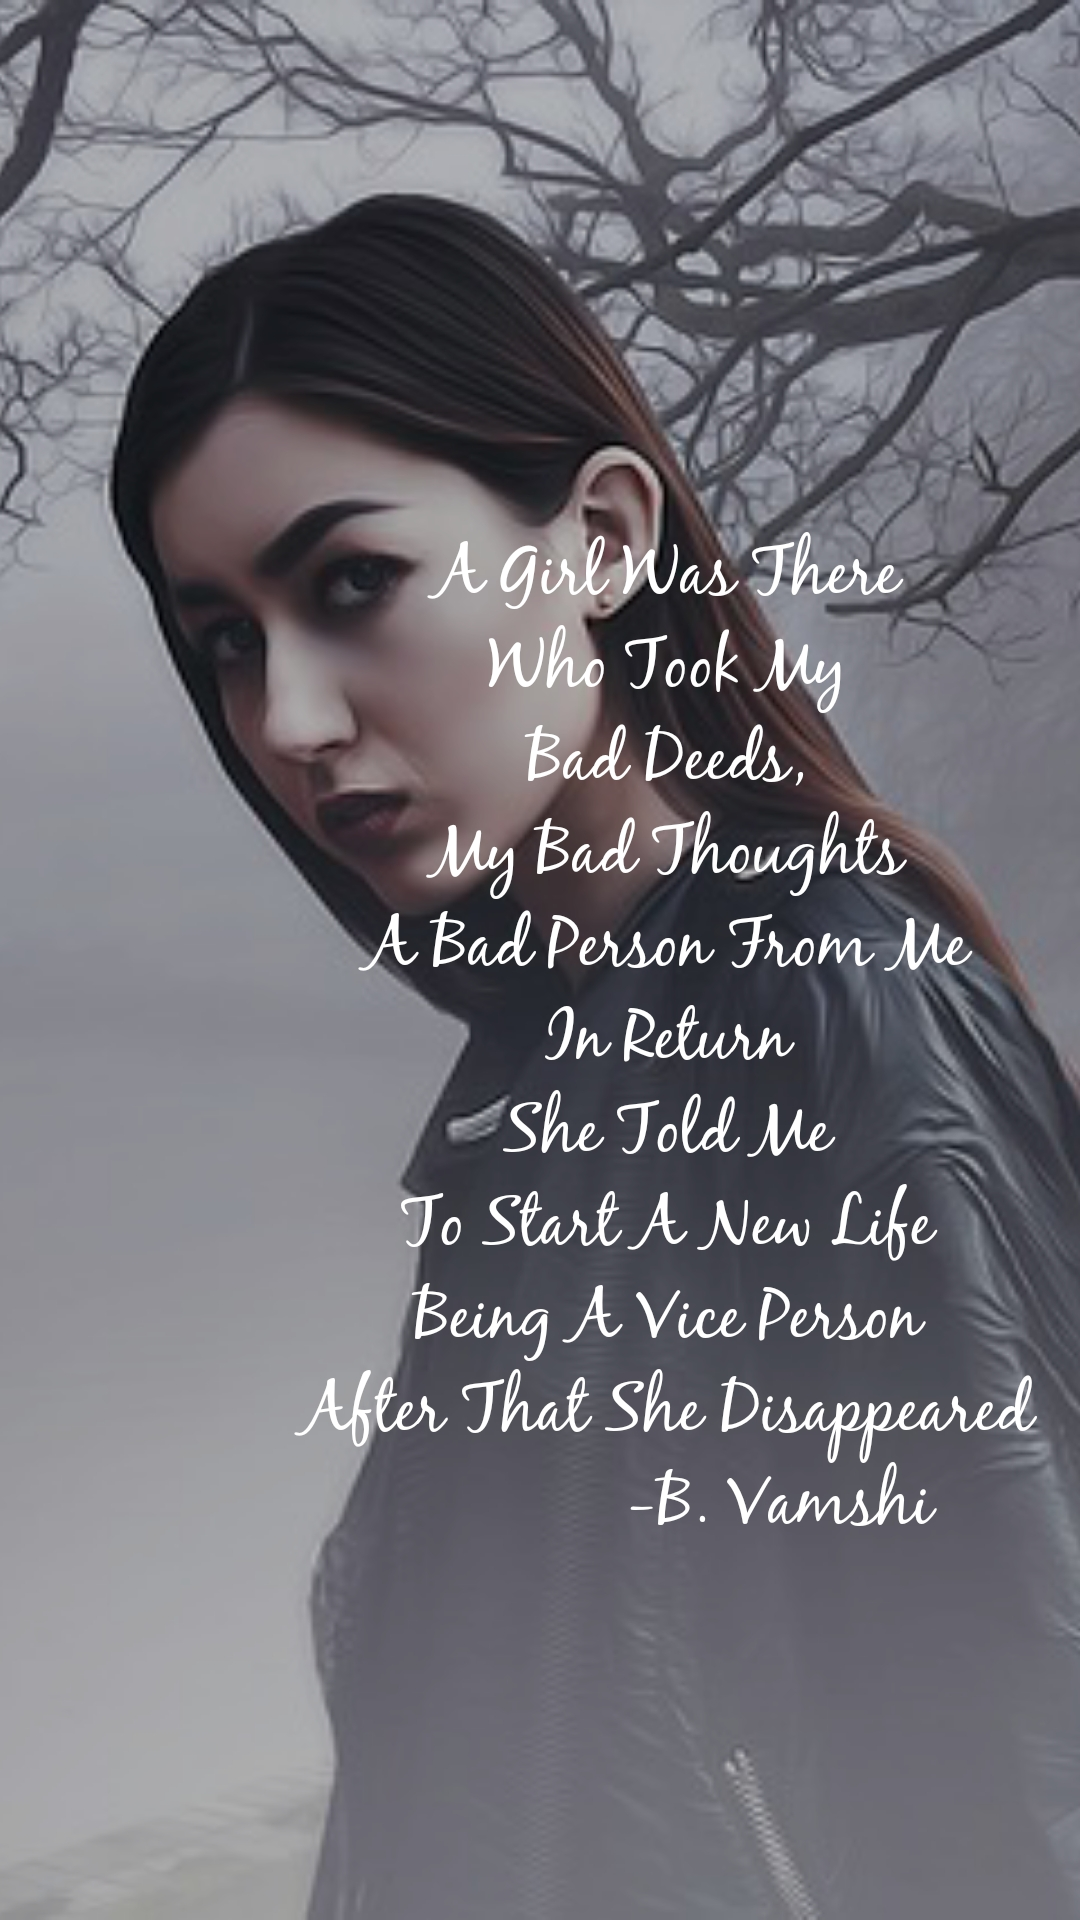 A Girl Was There Who Took My Bad Deeds, My Bad Thoughts A Bad Person From Me In Return She Told Me To Start A New Life Being A Vice Person After That She Disappeared              -B. Vamshi